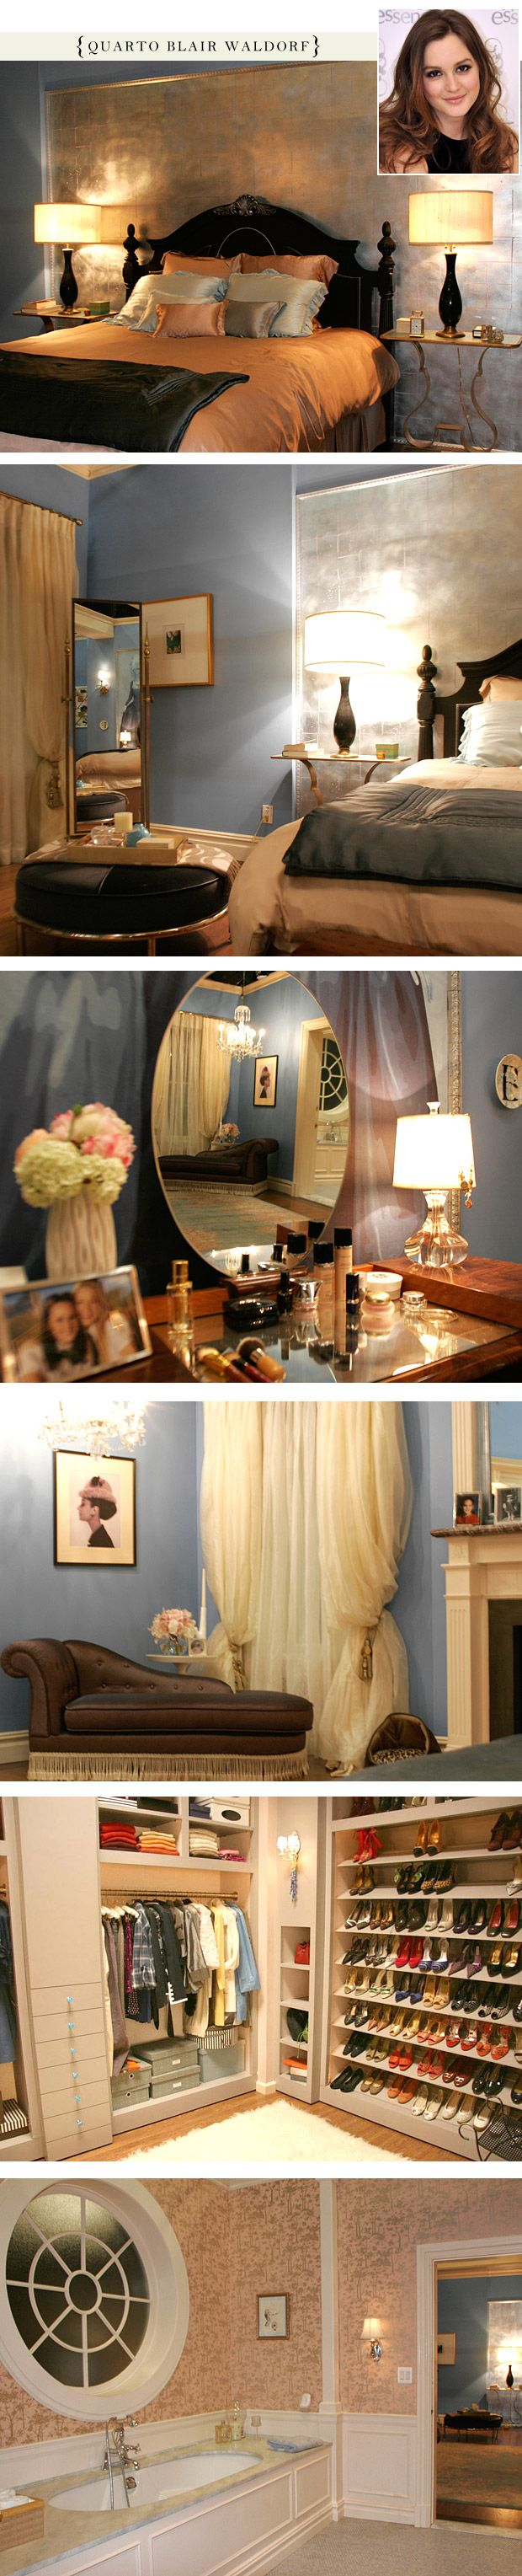 Fesselnd Blair Waldorfu0027s Bedroom On Gossip Girl